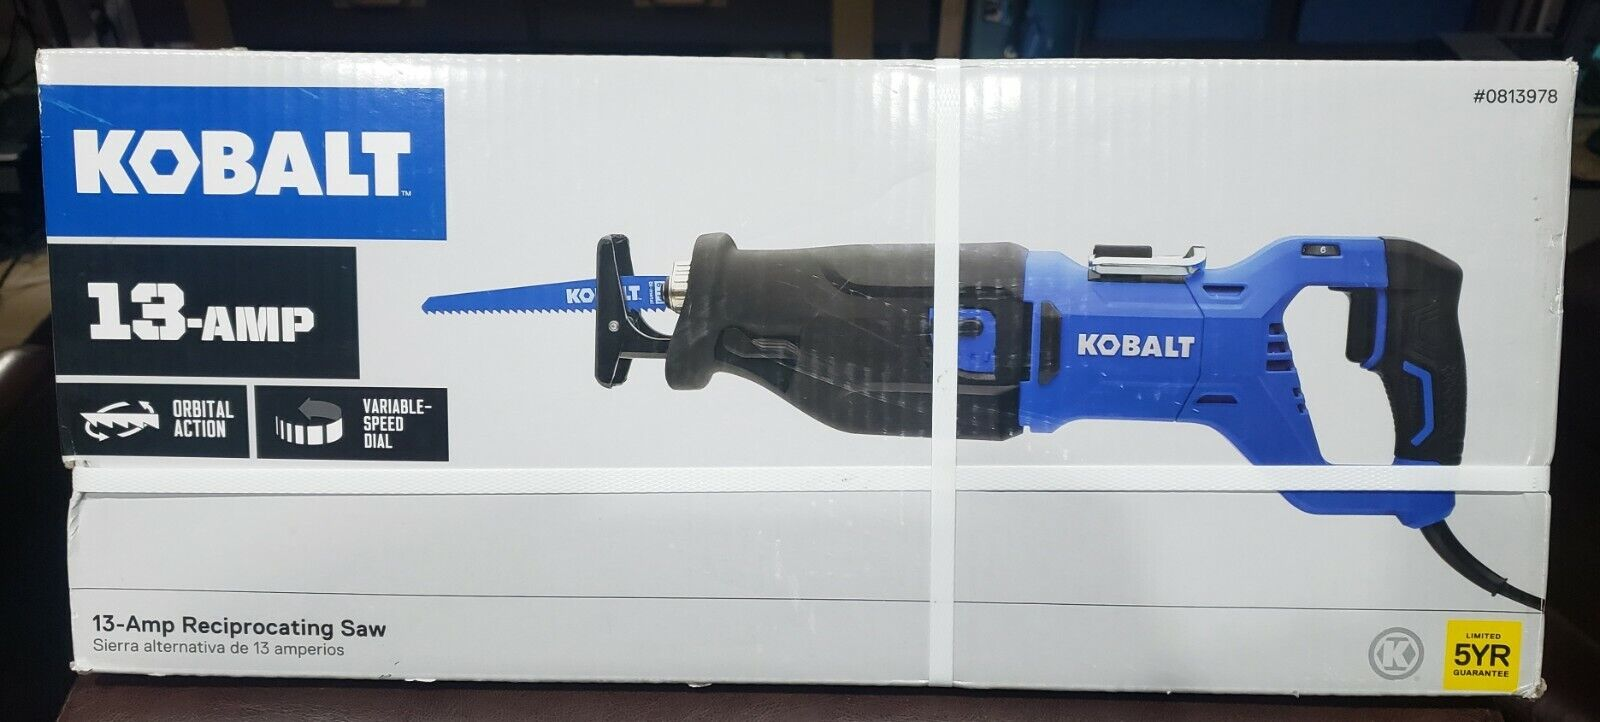 NEW 13-AMP KOBALT RECIPROCATING SAW